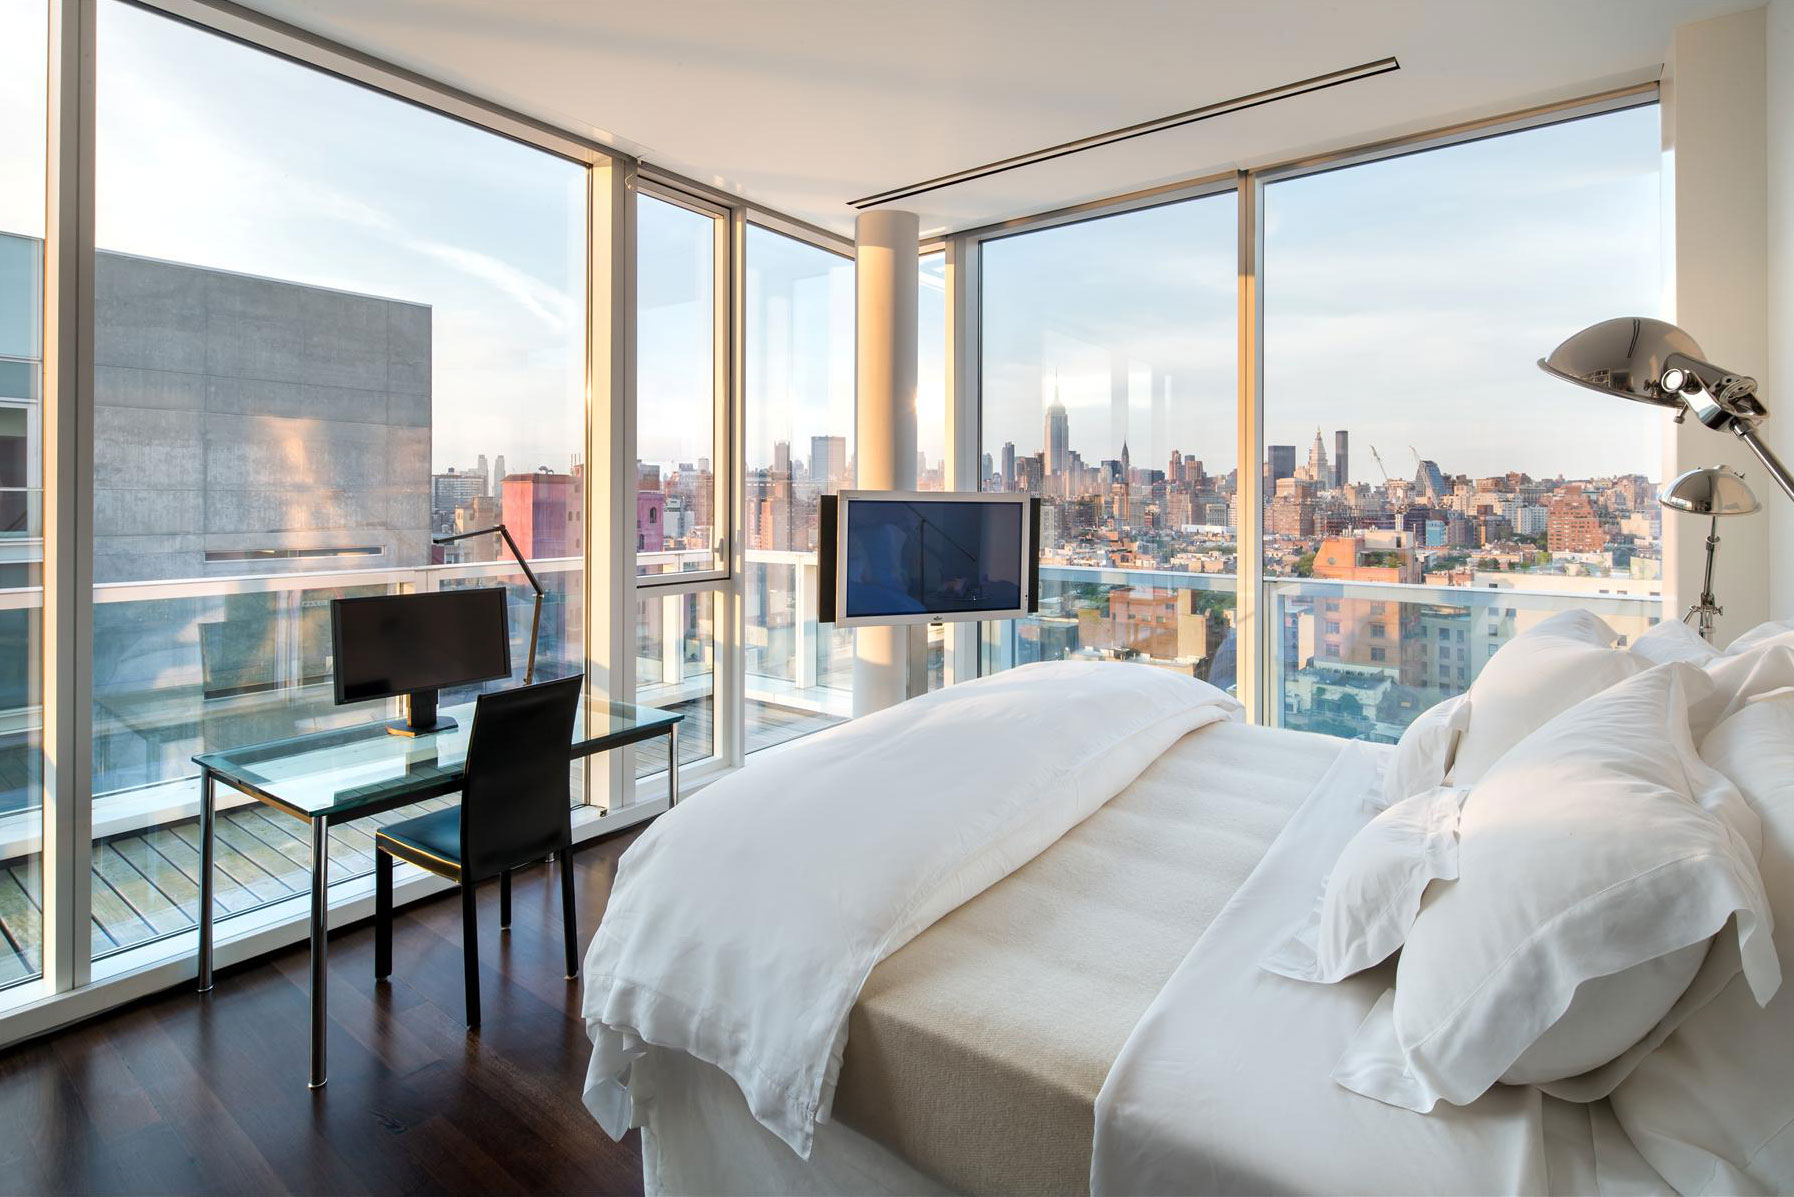 Bedroom, Glass Walls, Balcony, Apartment in Manhattan